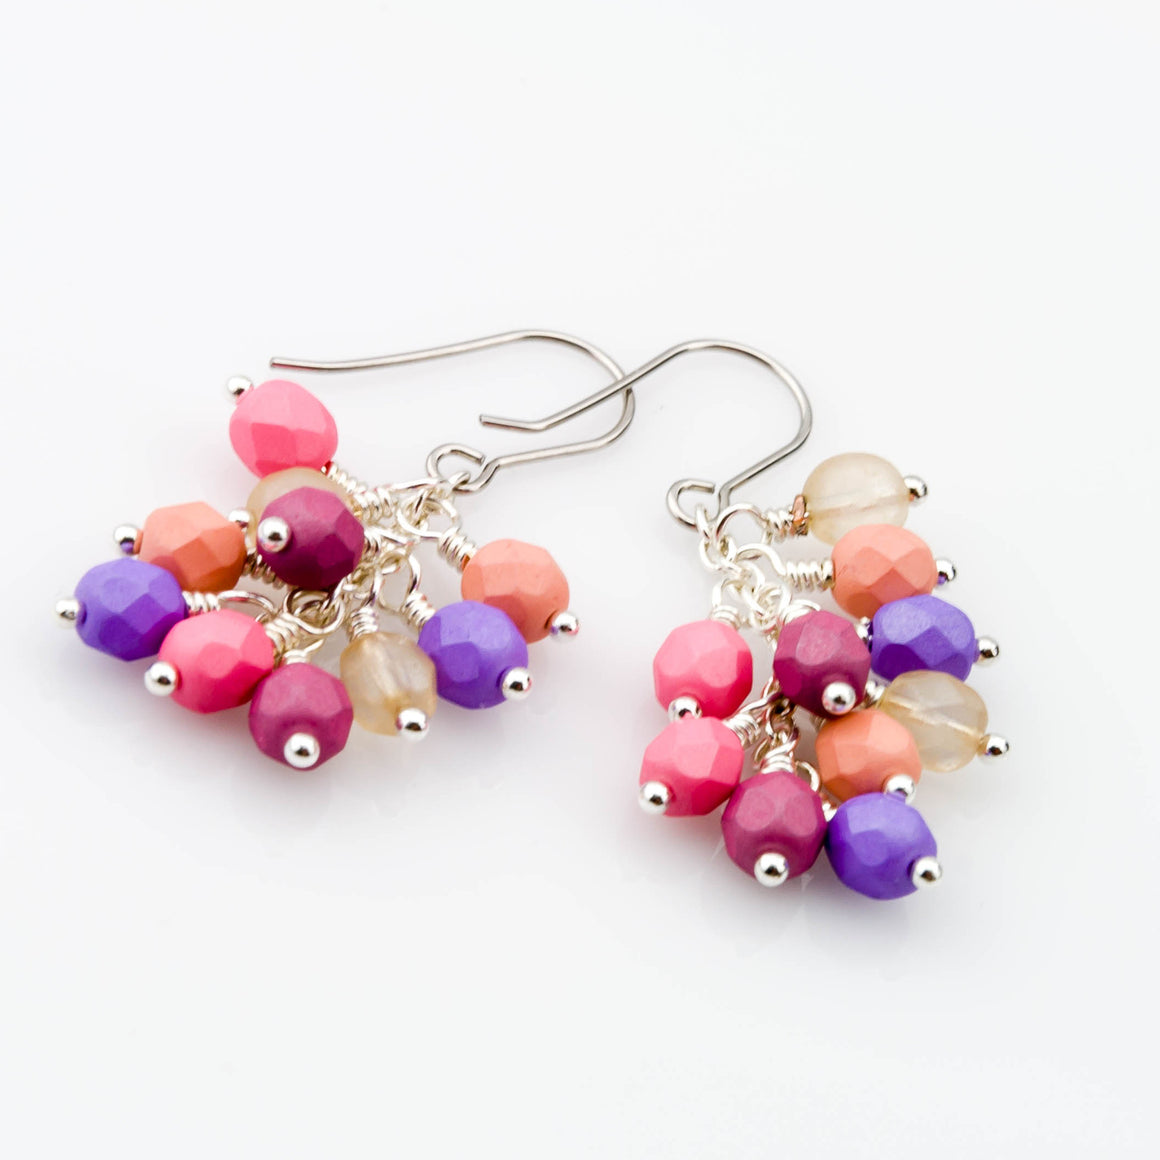 Hard Candy Cluster Earrings